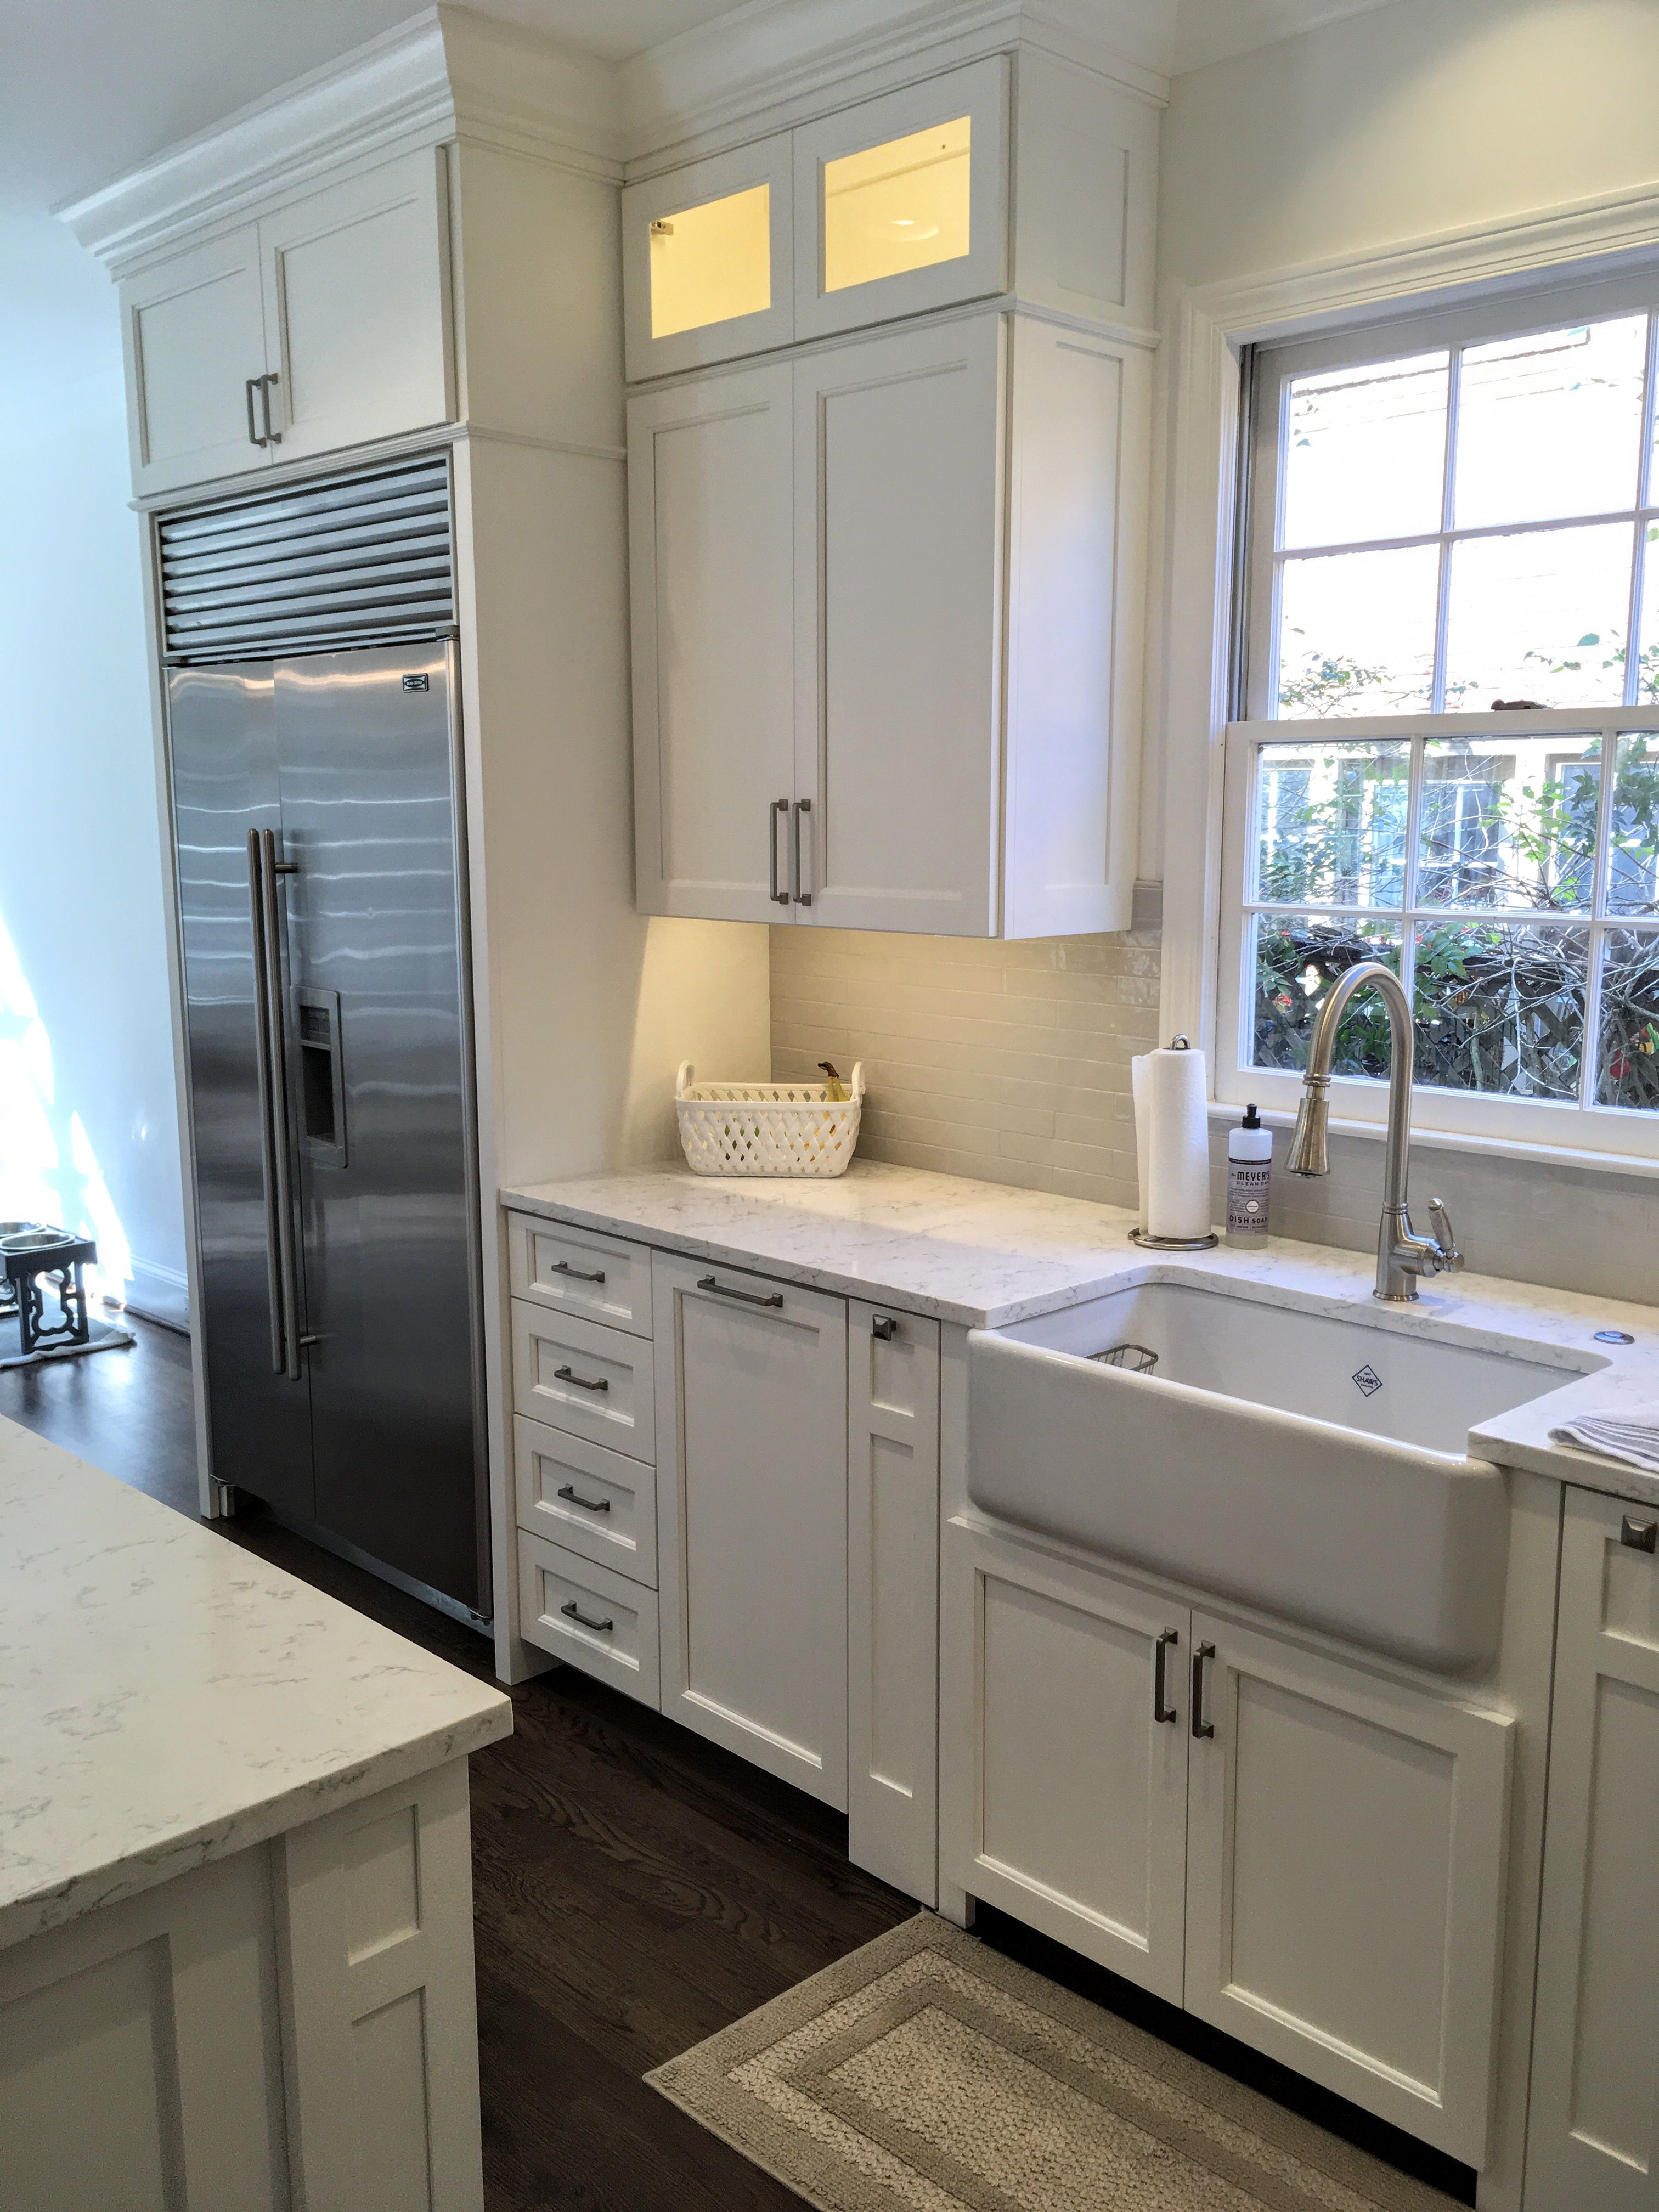 Finished Kitchen Shaker Doors On Full Overlay Cabinets Finished In Sherwin Williams Greek Villa Wh Full Overlay Cabinets Cabinet Doors Kitchen Cabinet Design